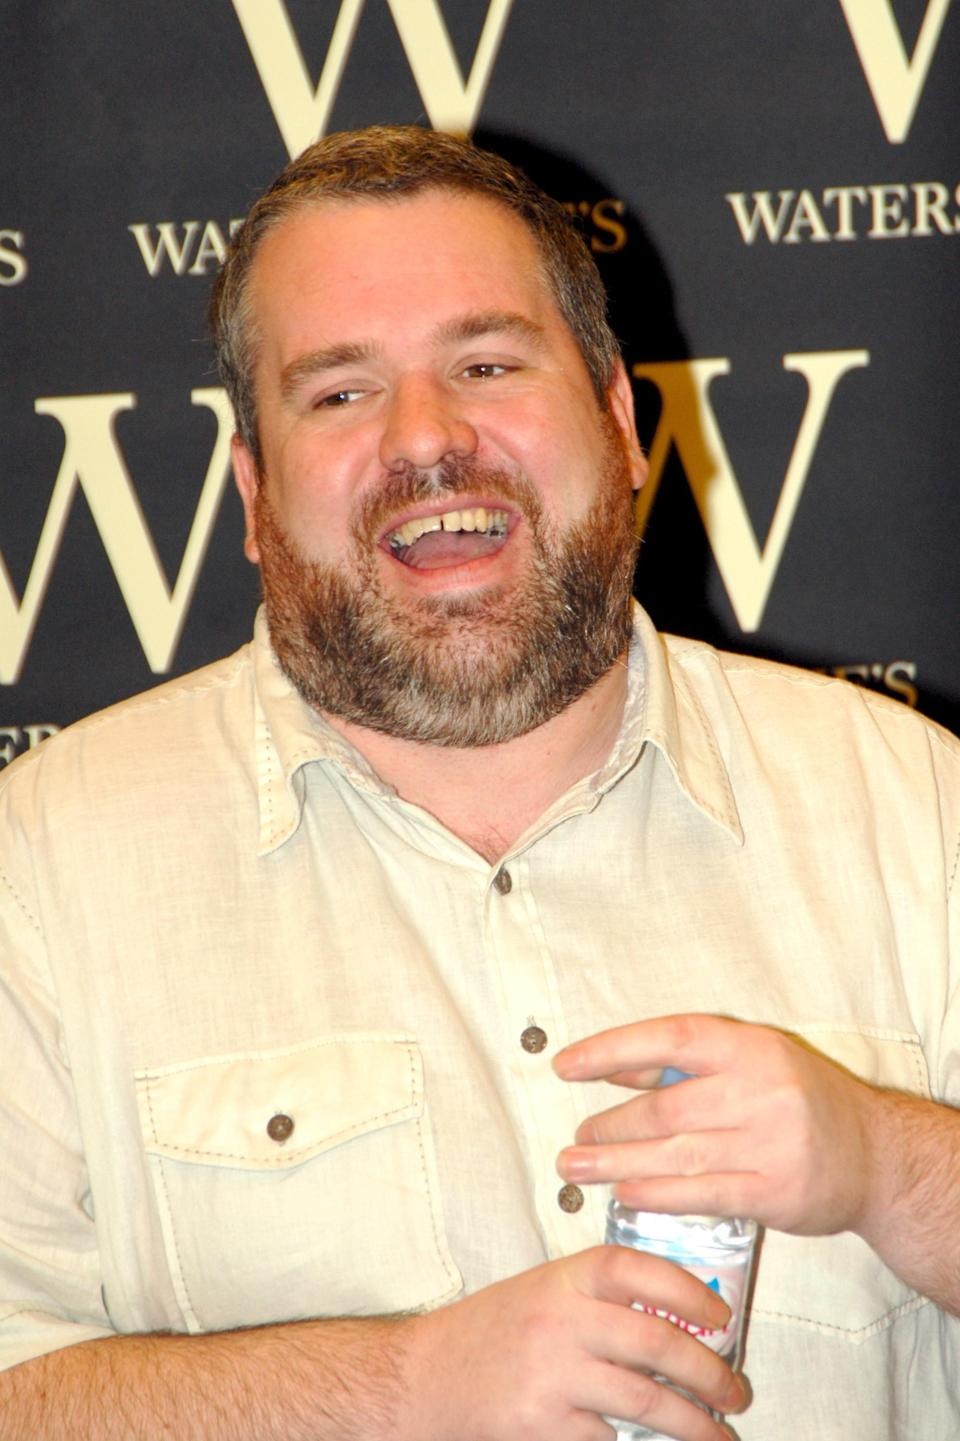 Chris Moyles at his book signing in 2006. (Getty Images)